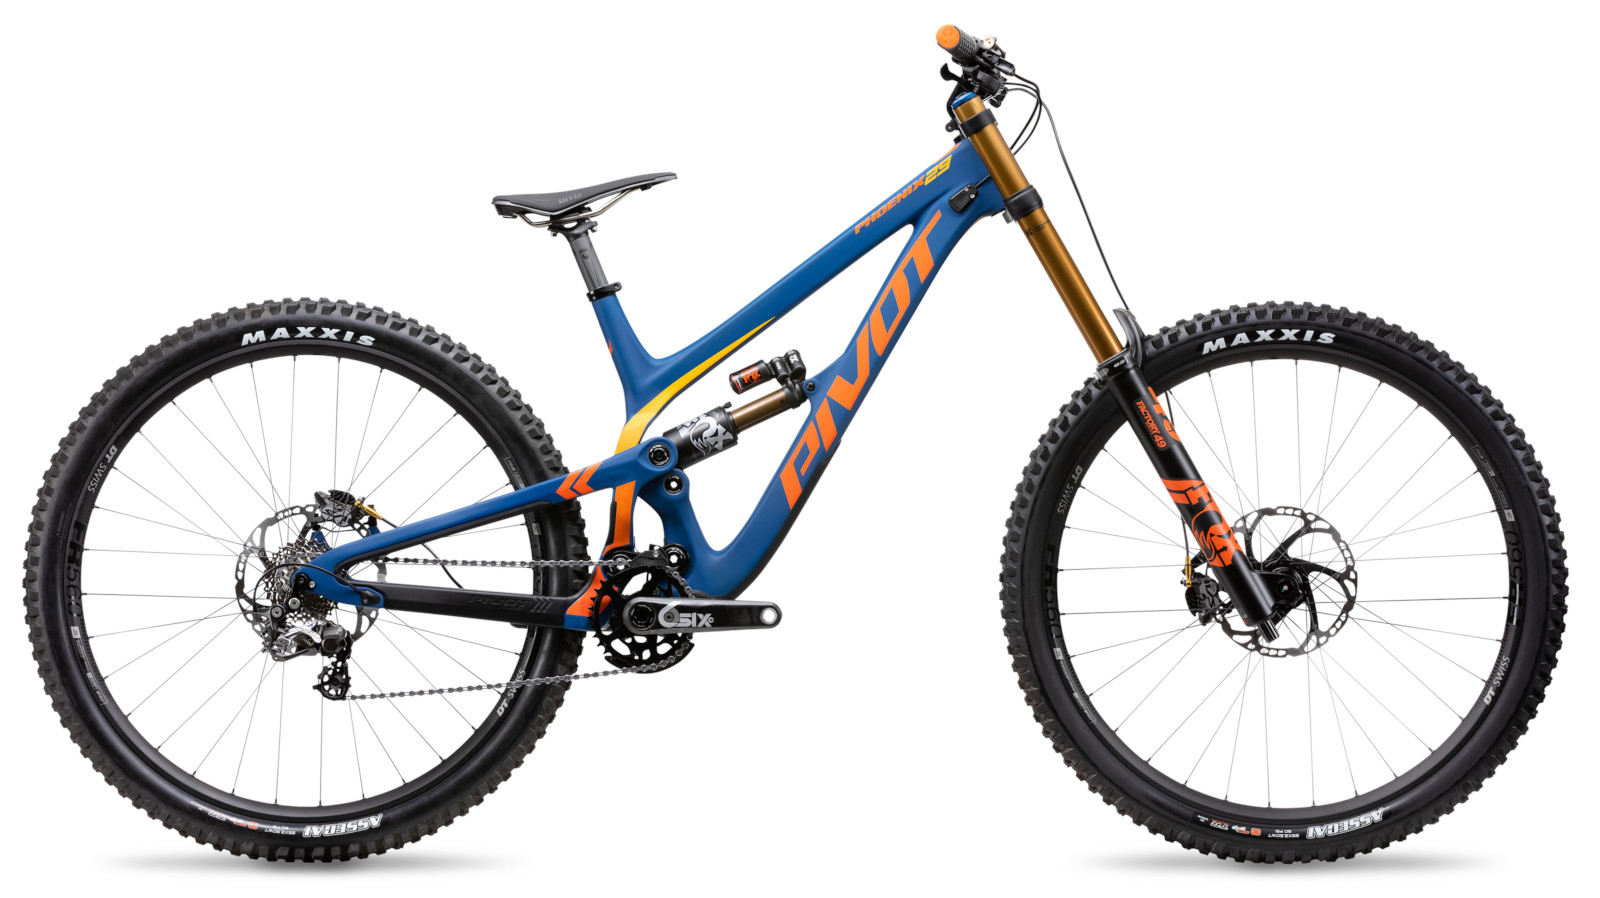 Pivot's All-New Phoenix 29 Has Landed